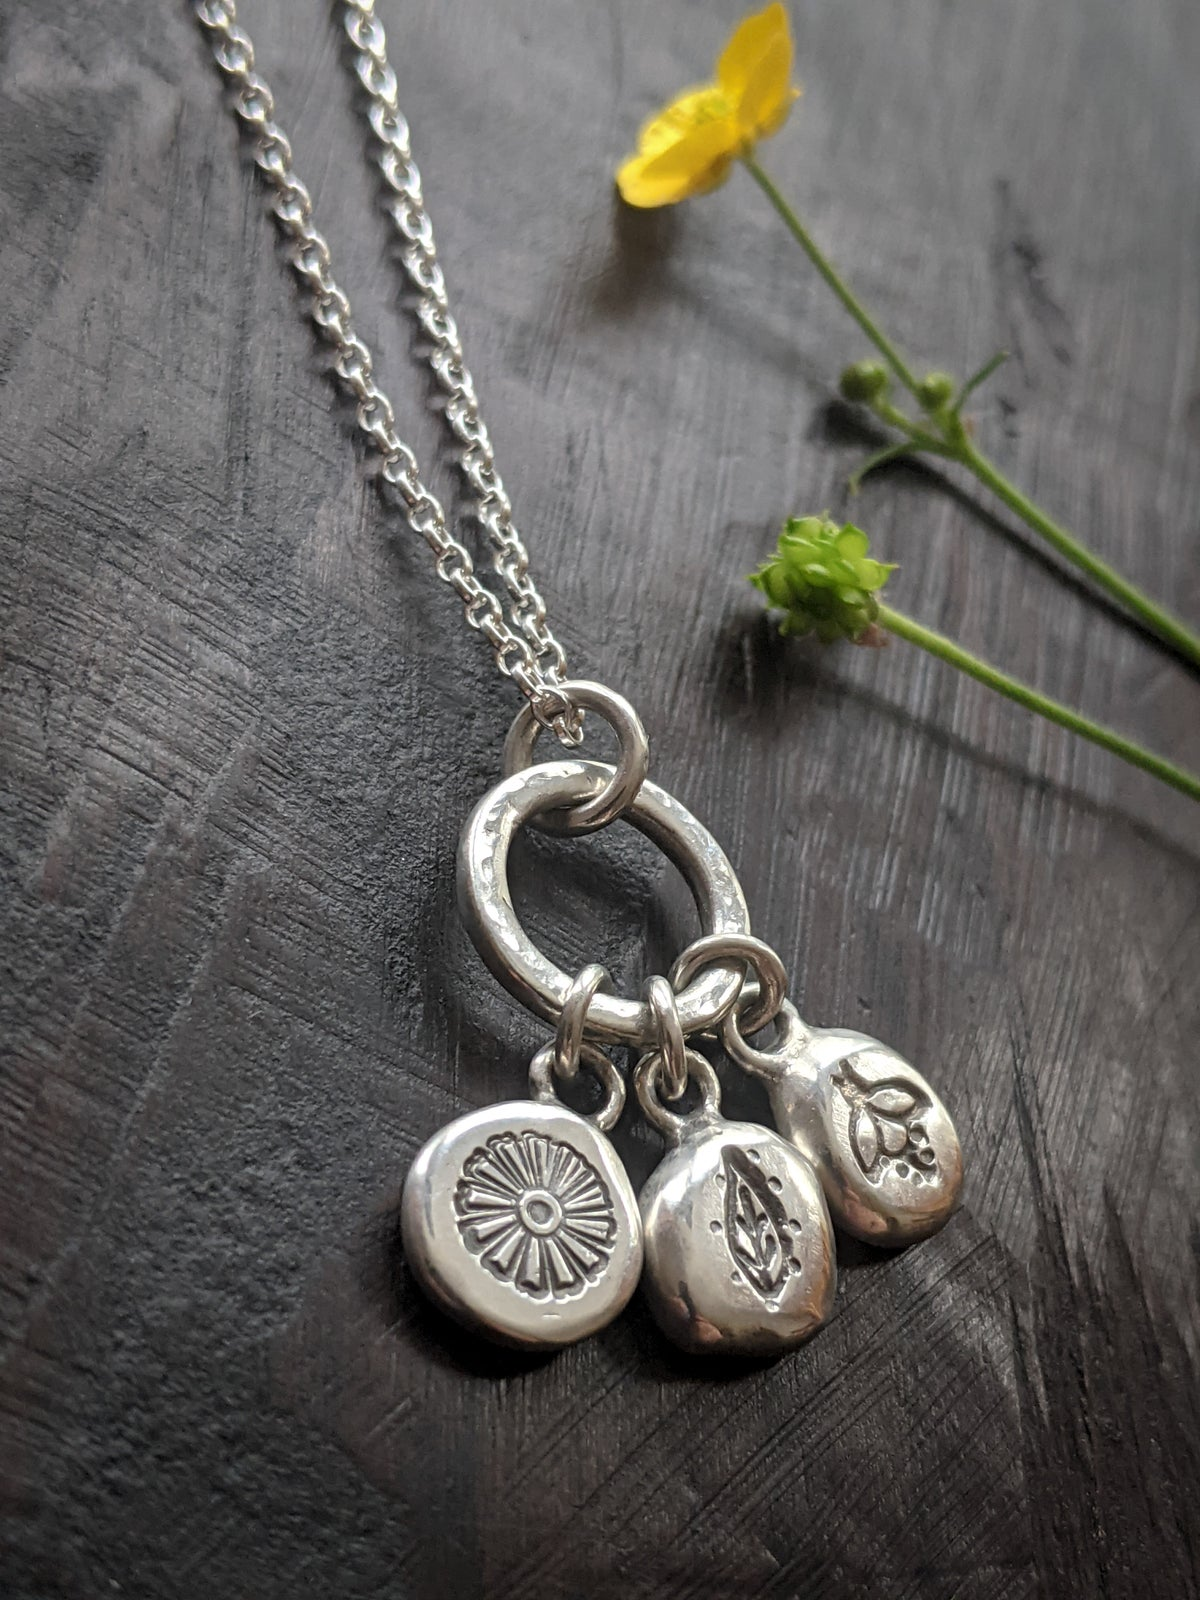 Into the Meadow primal pebbles recycled silver pendant